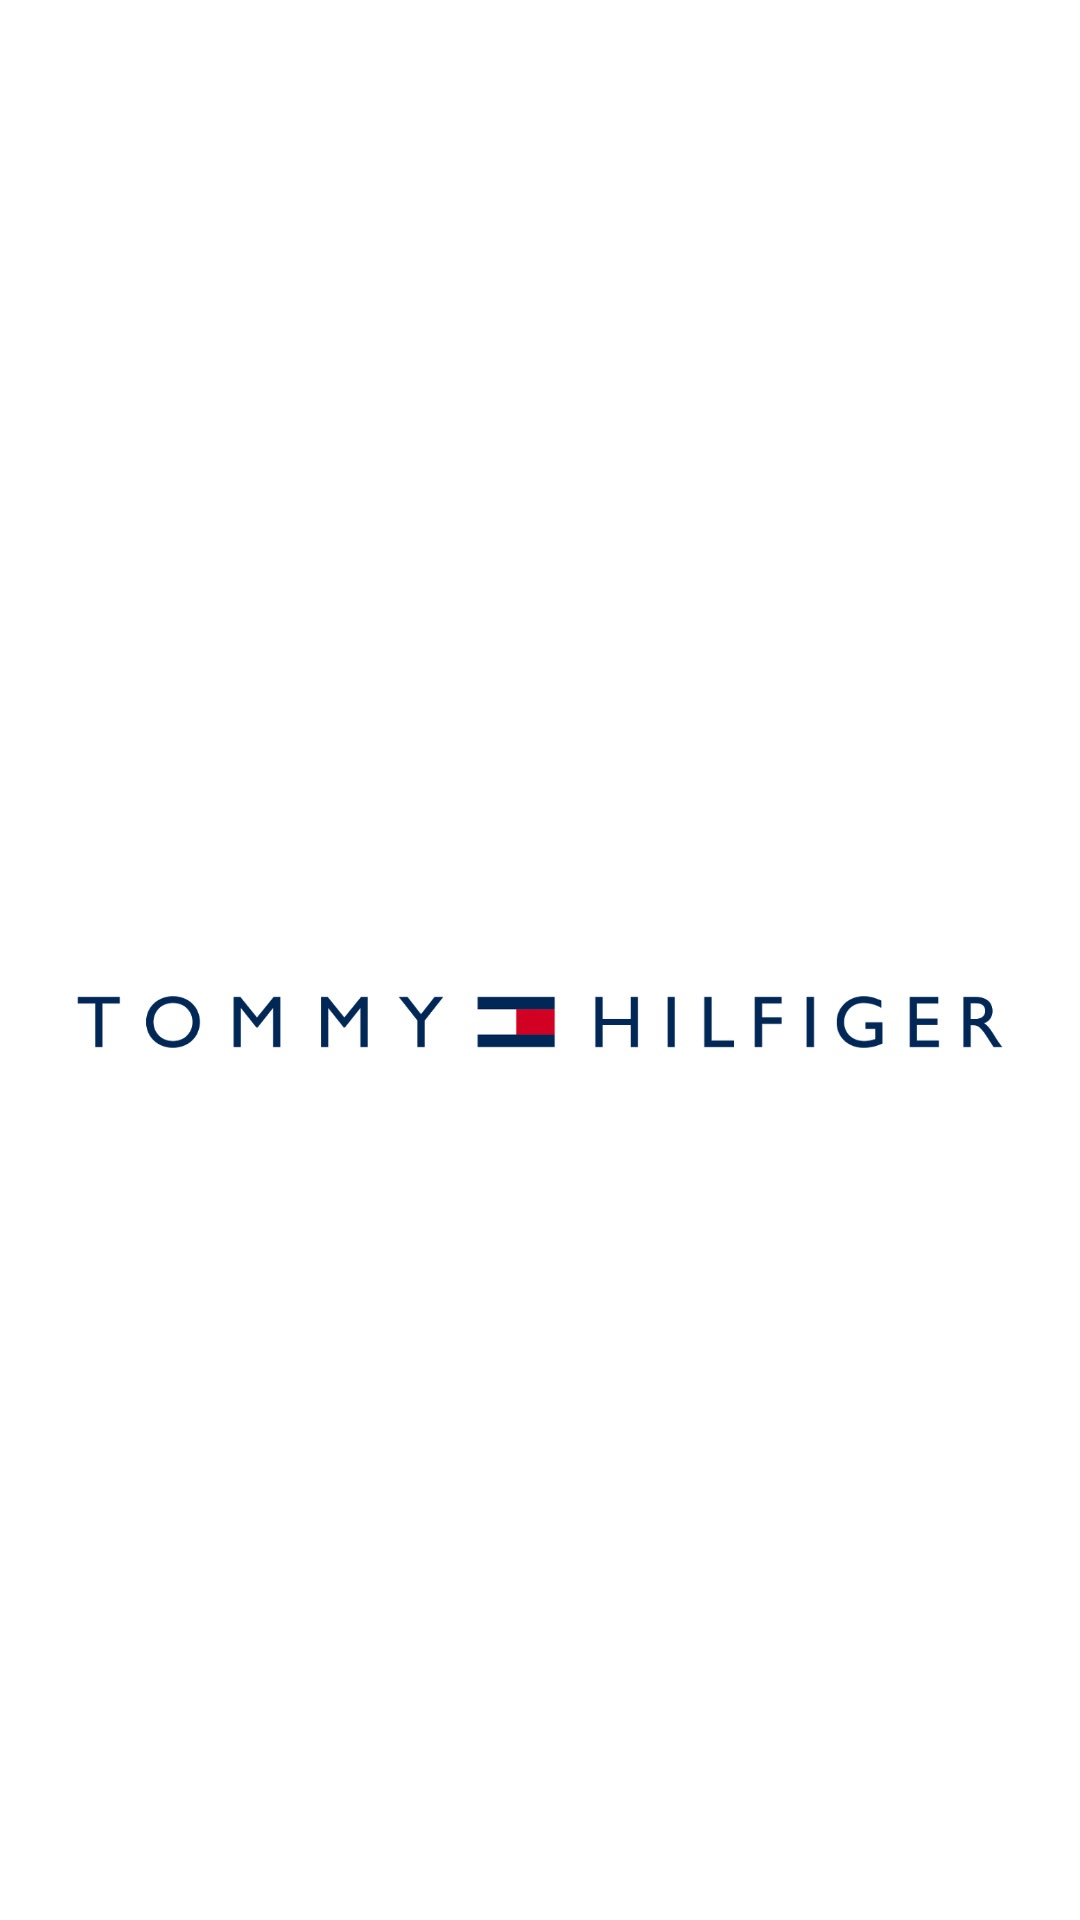 tommyhilfiger05 - TOMMY HILFIGER/トミー・ヒルフィガーの高画質スマホ壁紙20枚 [iPhone&Androidに対応]